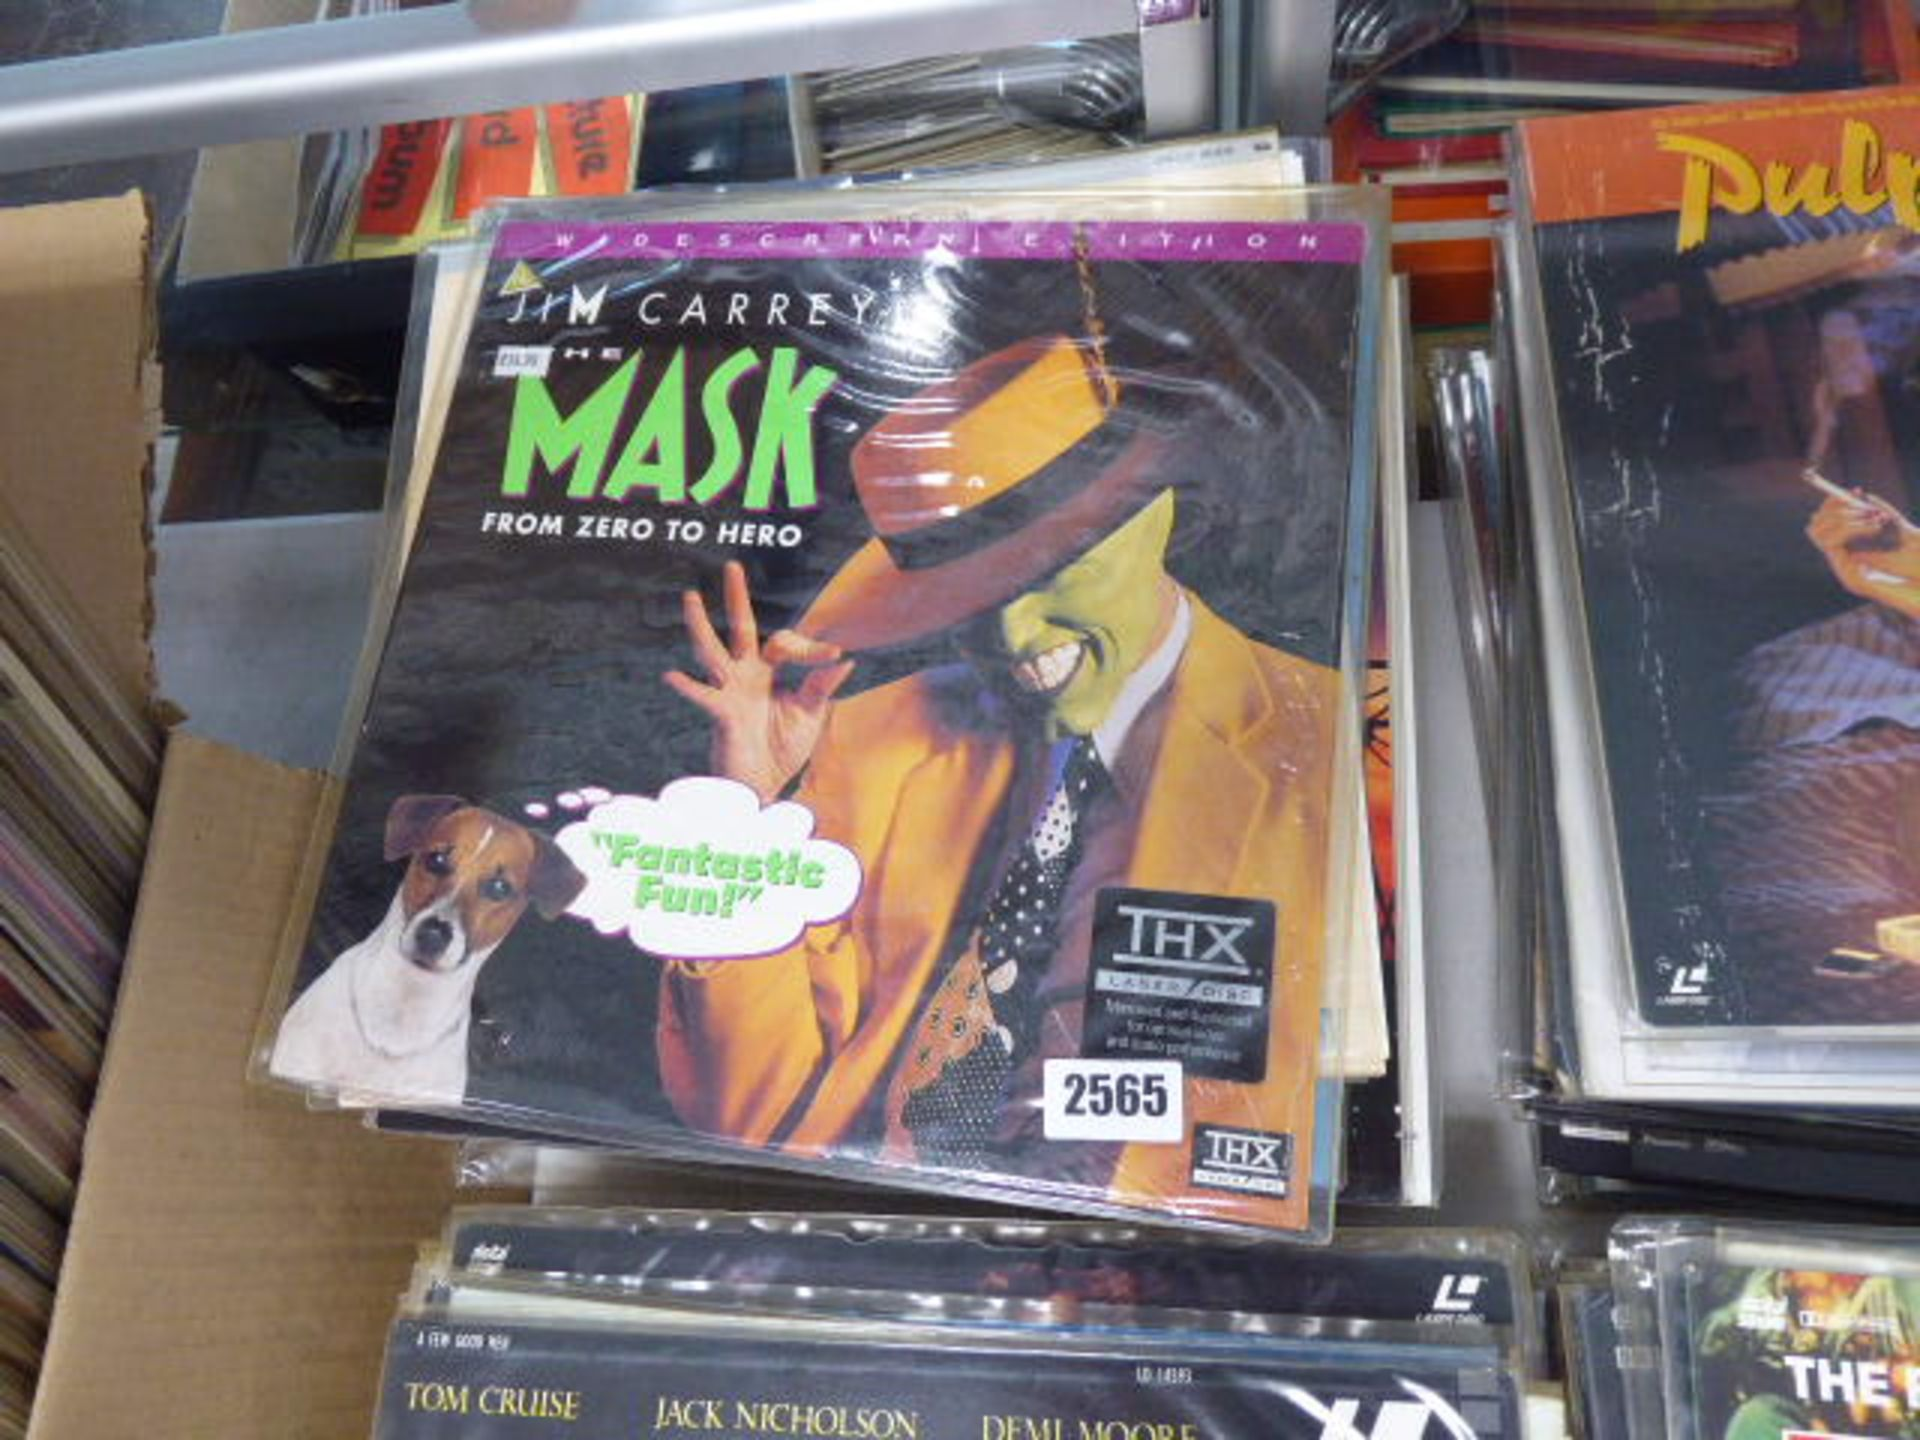 Lot 2565 - Approx 20 or more laser disk movies to inc. Jim Carey's The Mask, Uncle Buck, Never Ending Story and